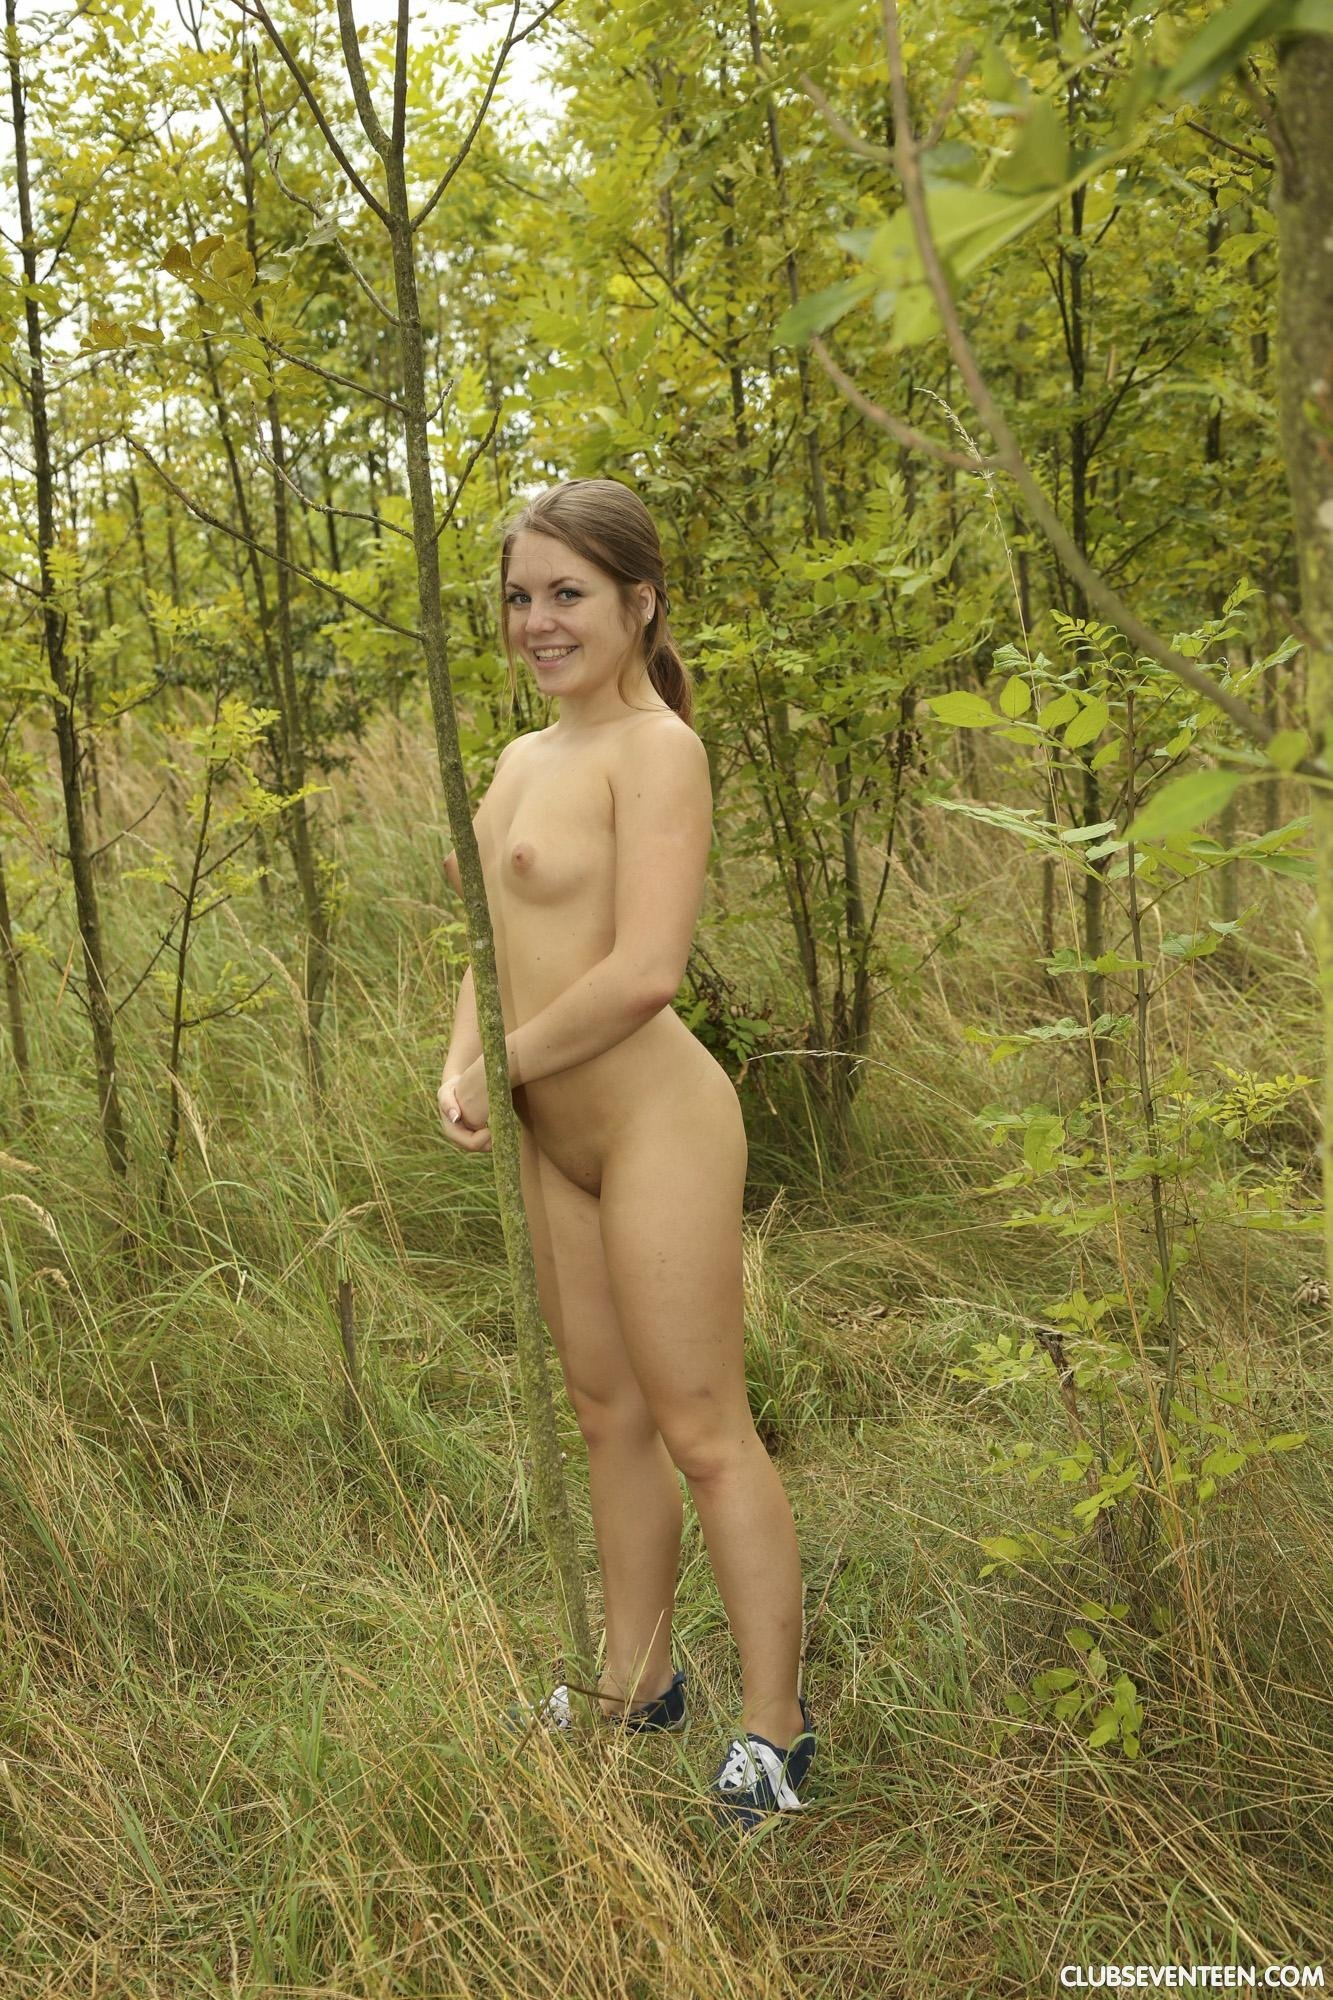 videos of people having sex outdoors